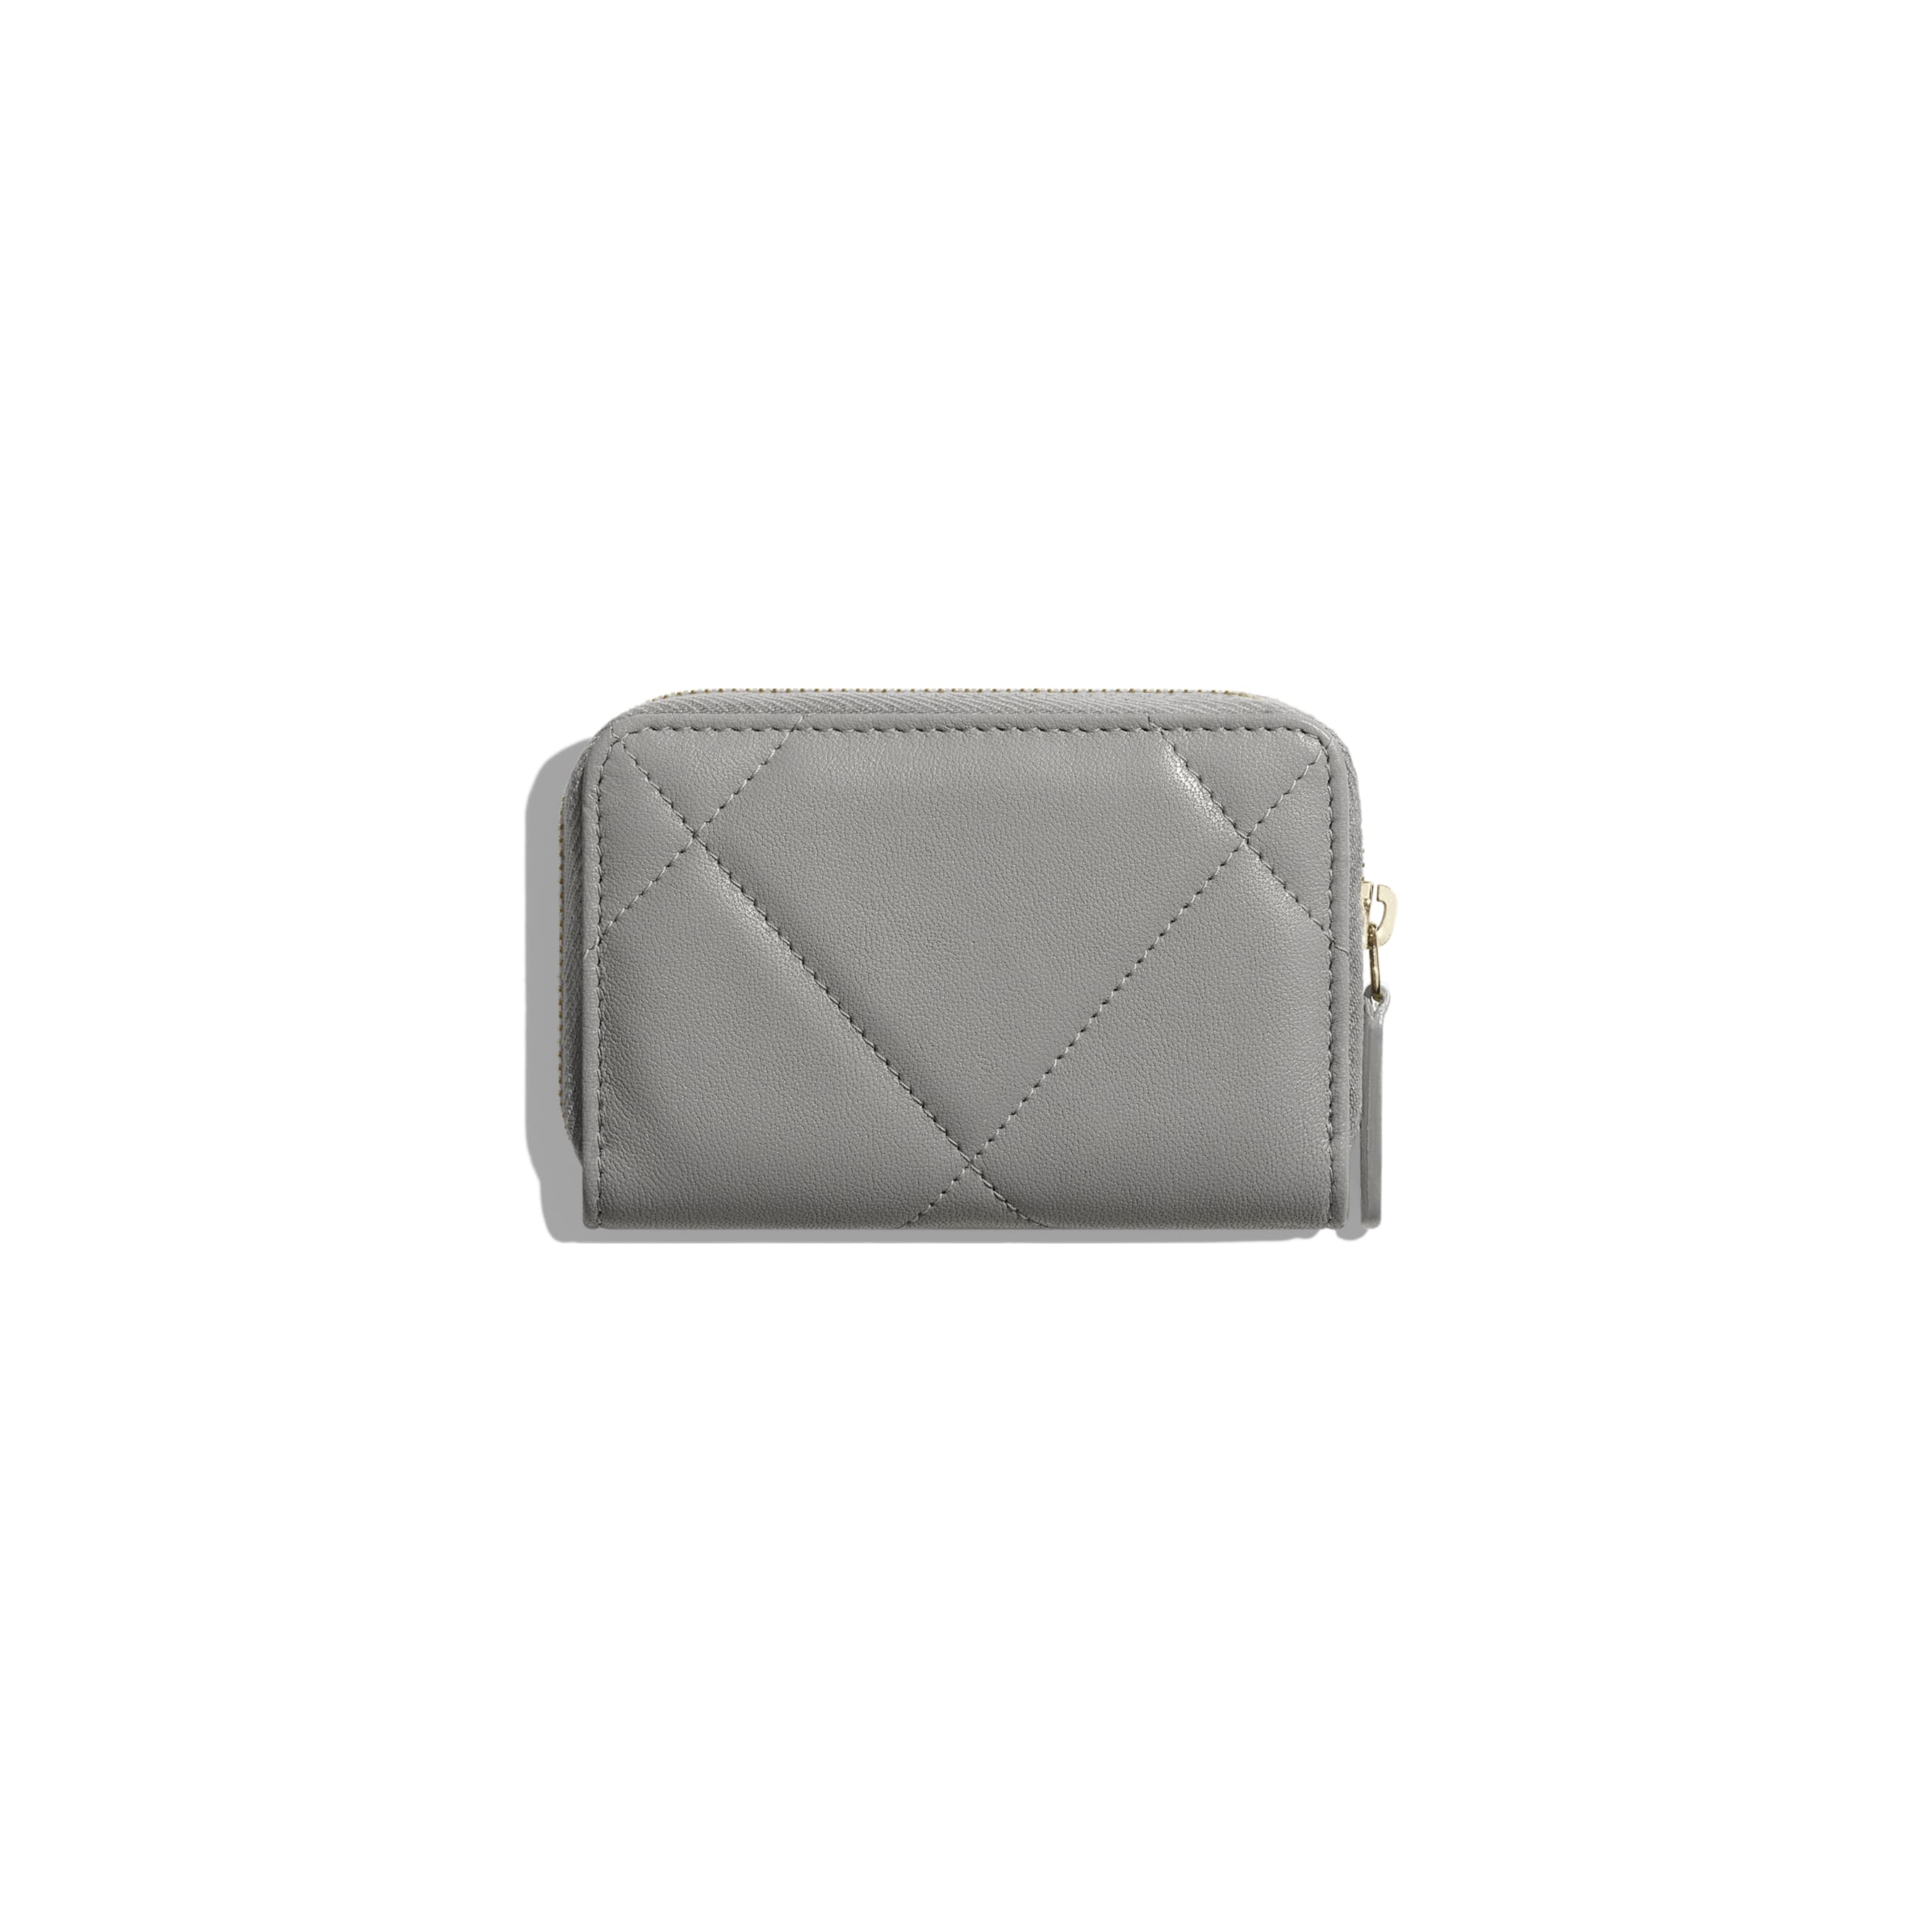 CHANEL 19 Zipped Coin Purse - Grey - Lambskin, Gold-Tone, Silver-Tone & Ruthenium-Finish Metal - Alternative view - see standard sized version